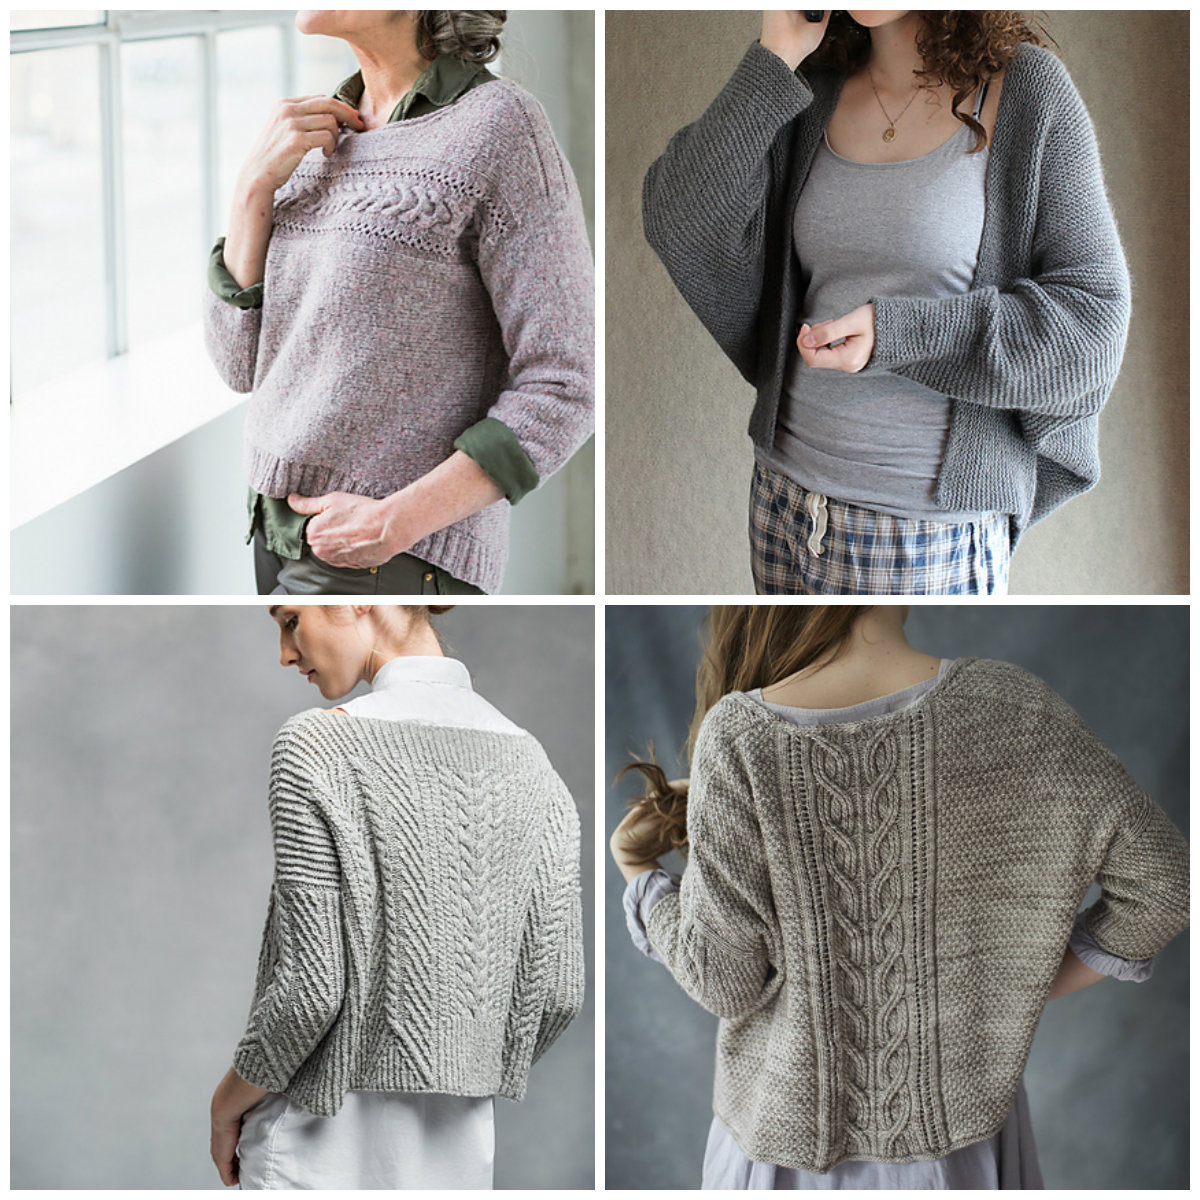 23e74dbf2 Let s Talk about Construction  Sweaters (Part 2) - Stitch and Unwind